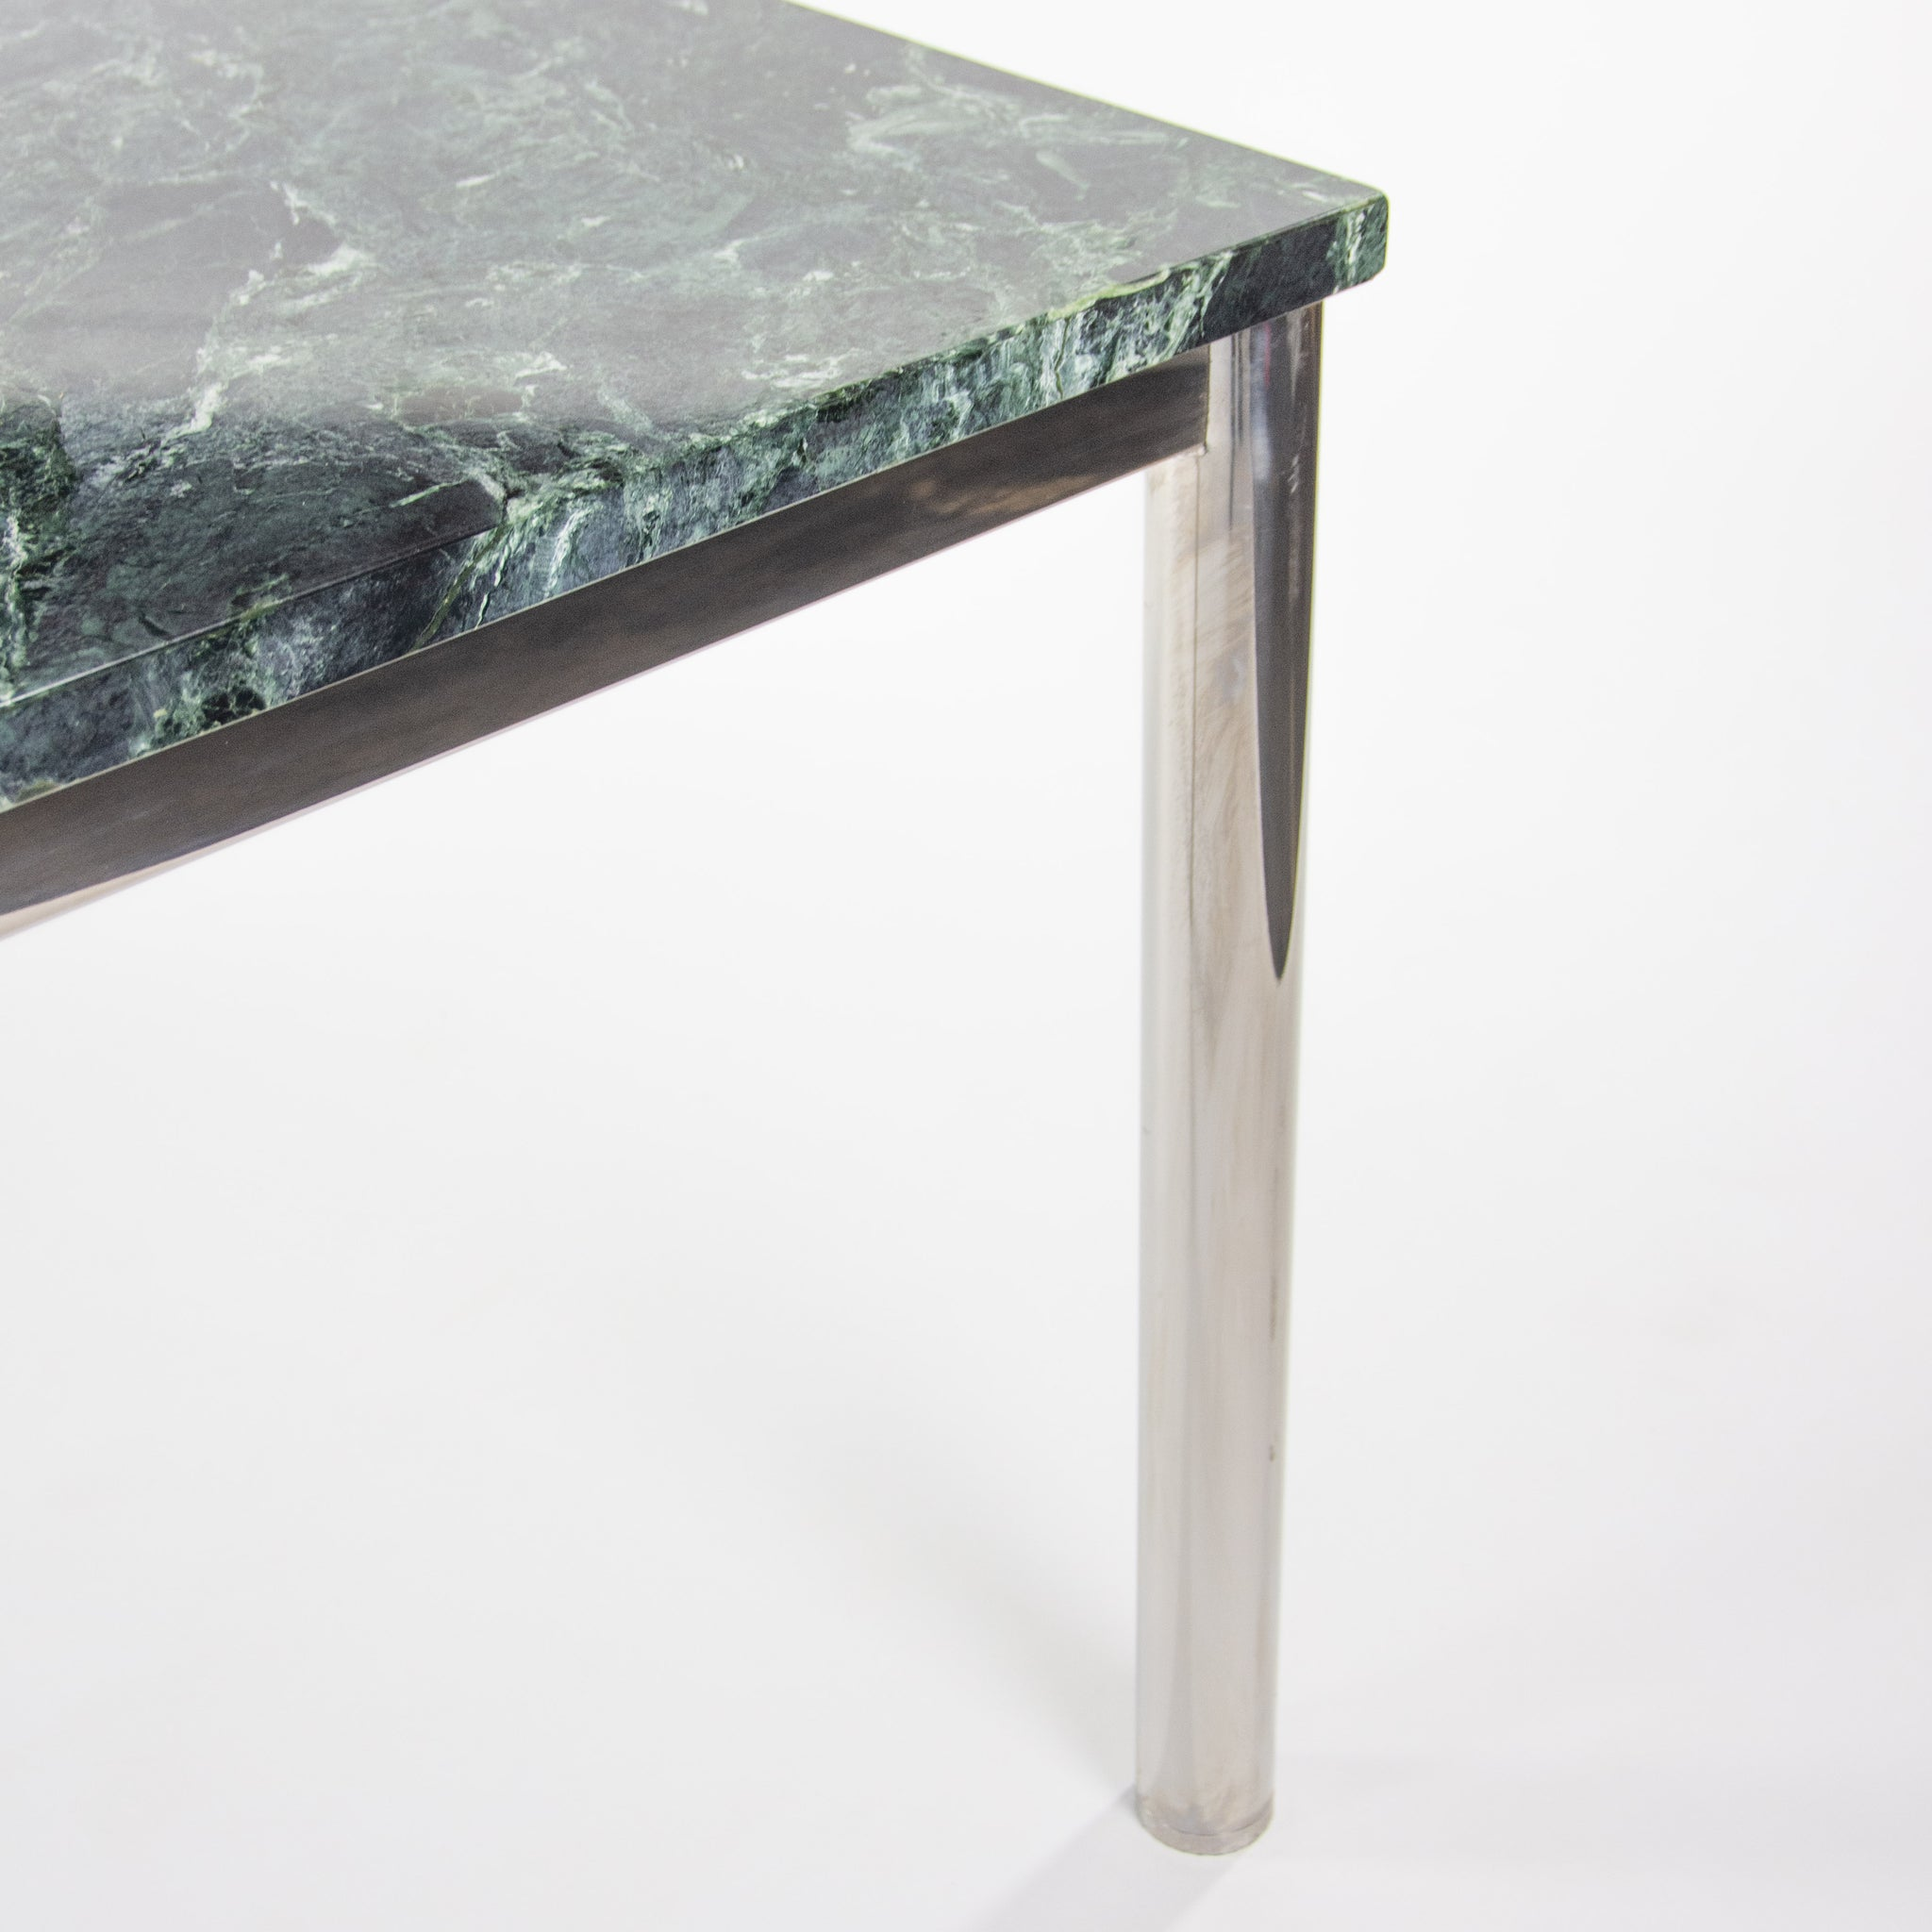 Green Granite 2011 6x3 Meeting Dining Conference Tables Stainless Steel Base